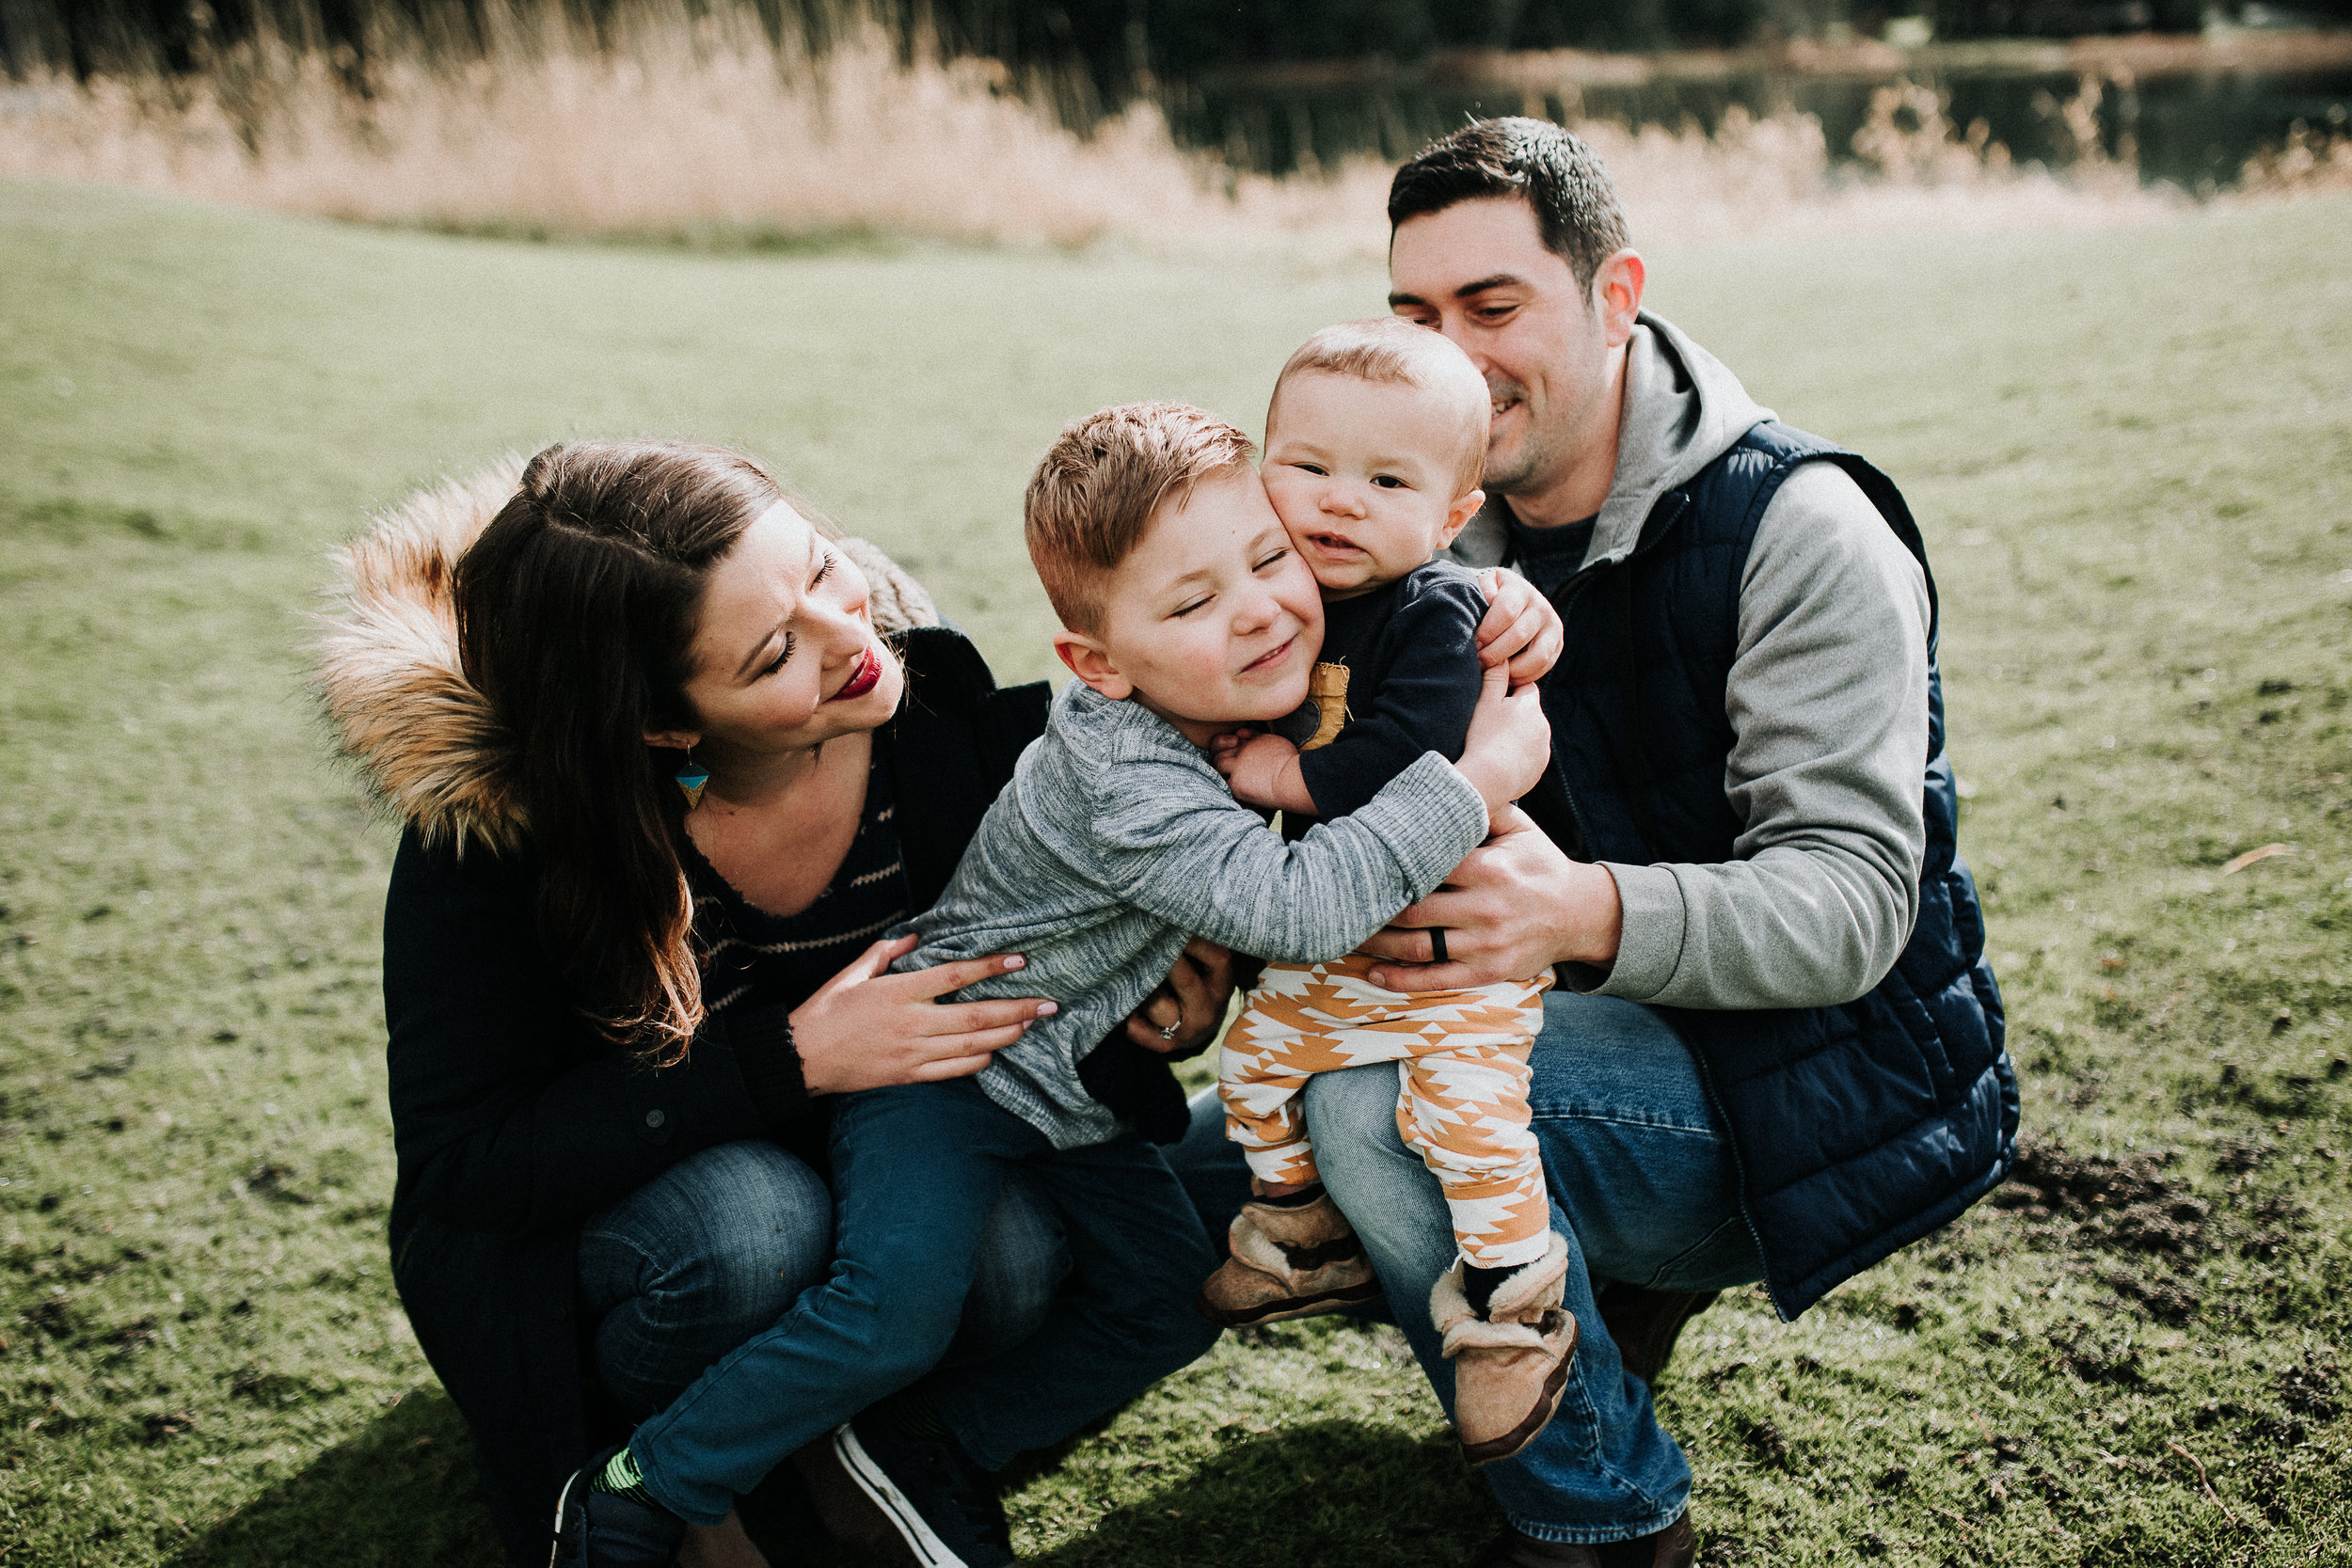 Family-Photographer-Bellingham-WA-Brianne-Bell-Photography-(Finkbonner)